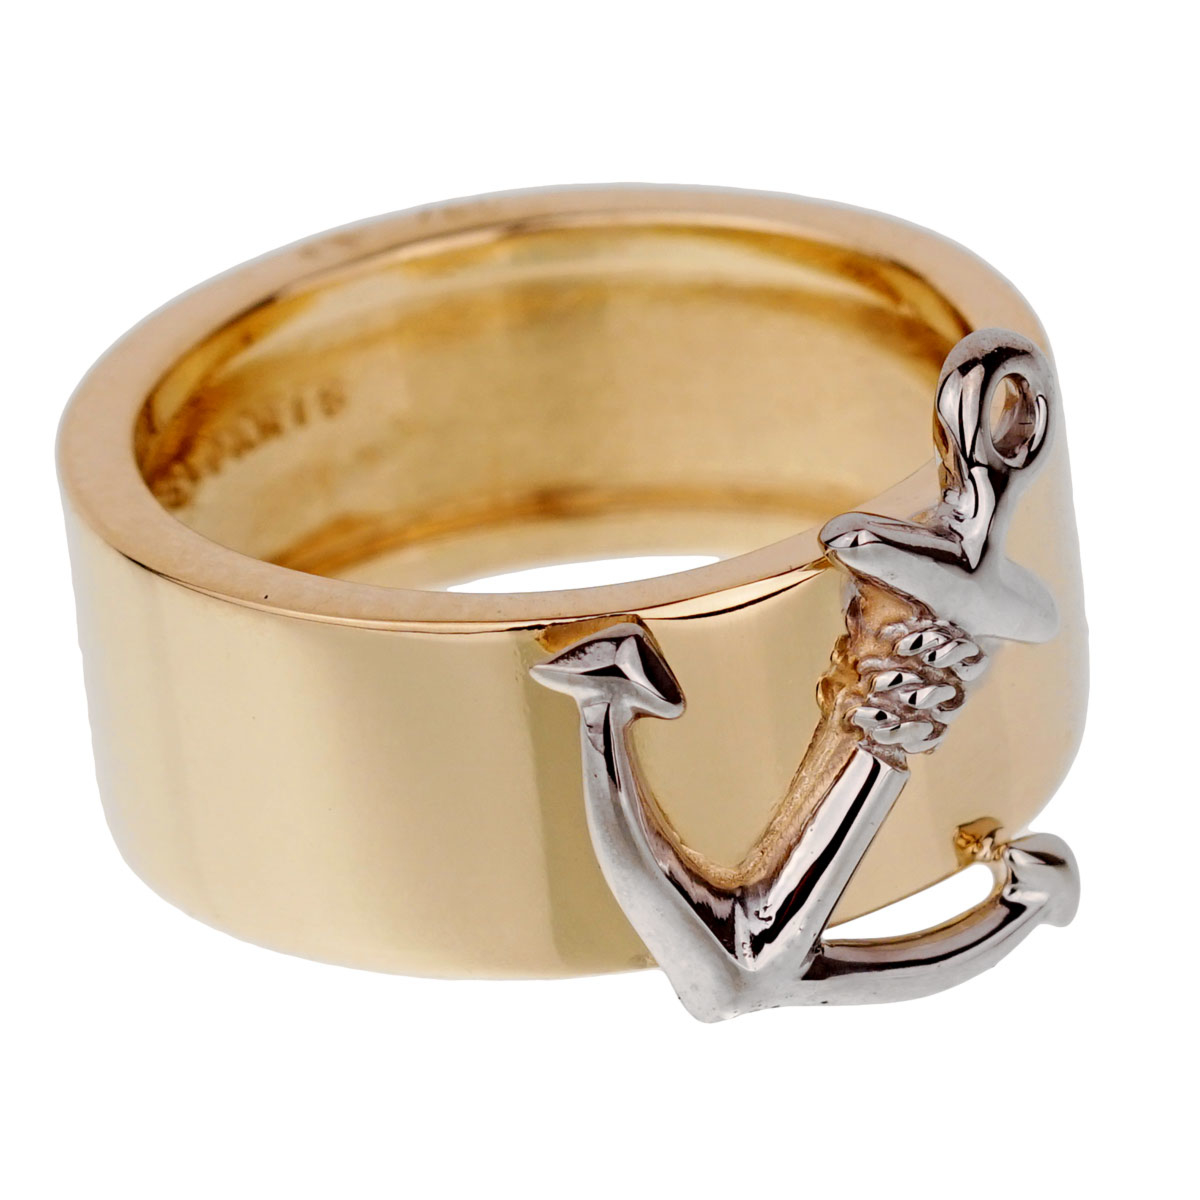 Hermes Yellow Gold Anchor Band Ring - Hermes Jewelry